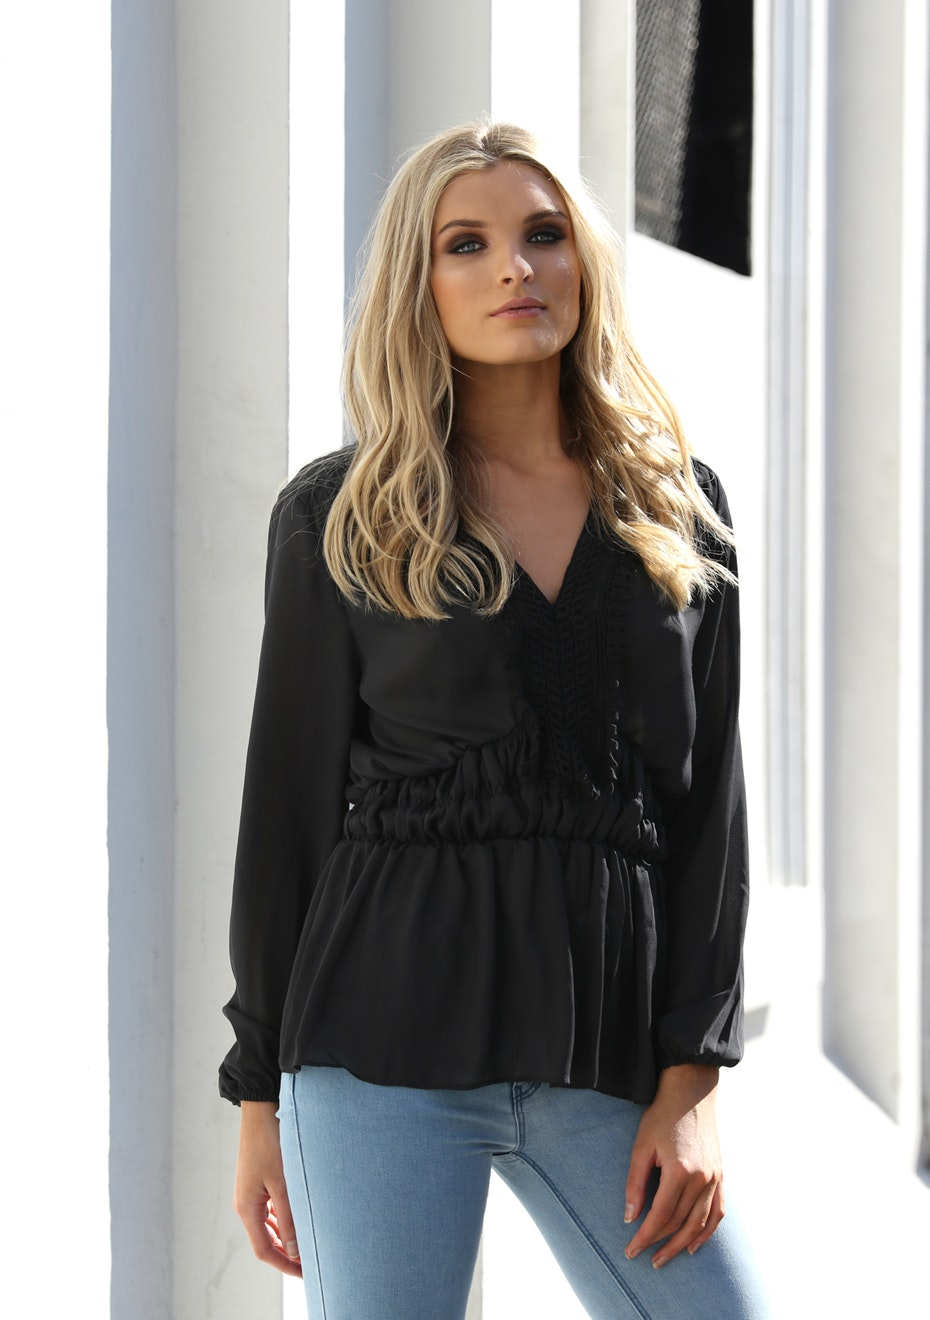 Madison - CANDICE BLOUSE - BLACK